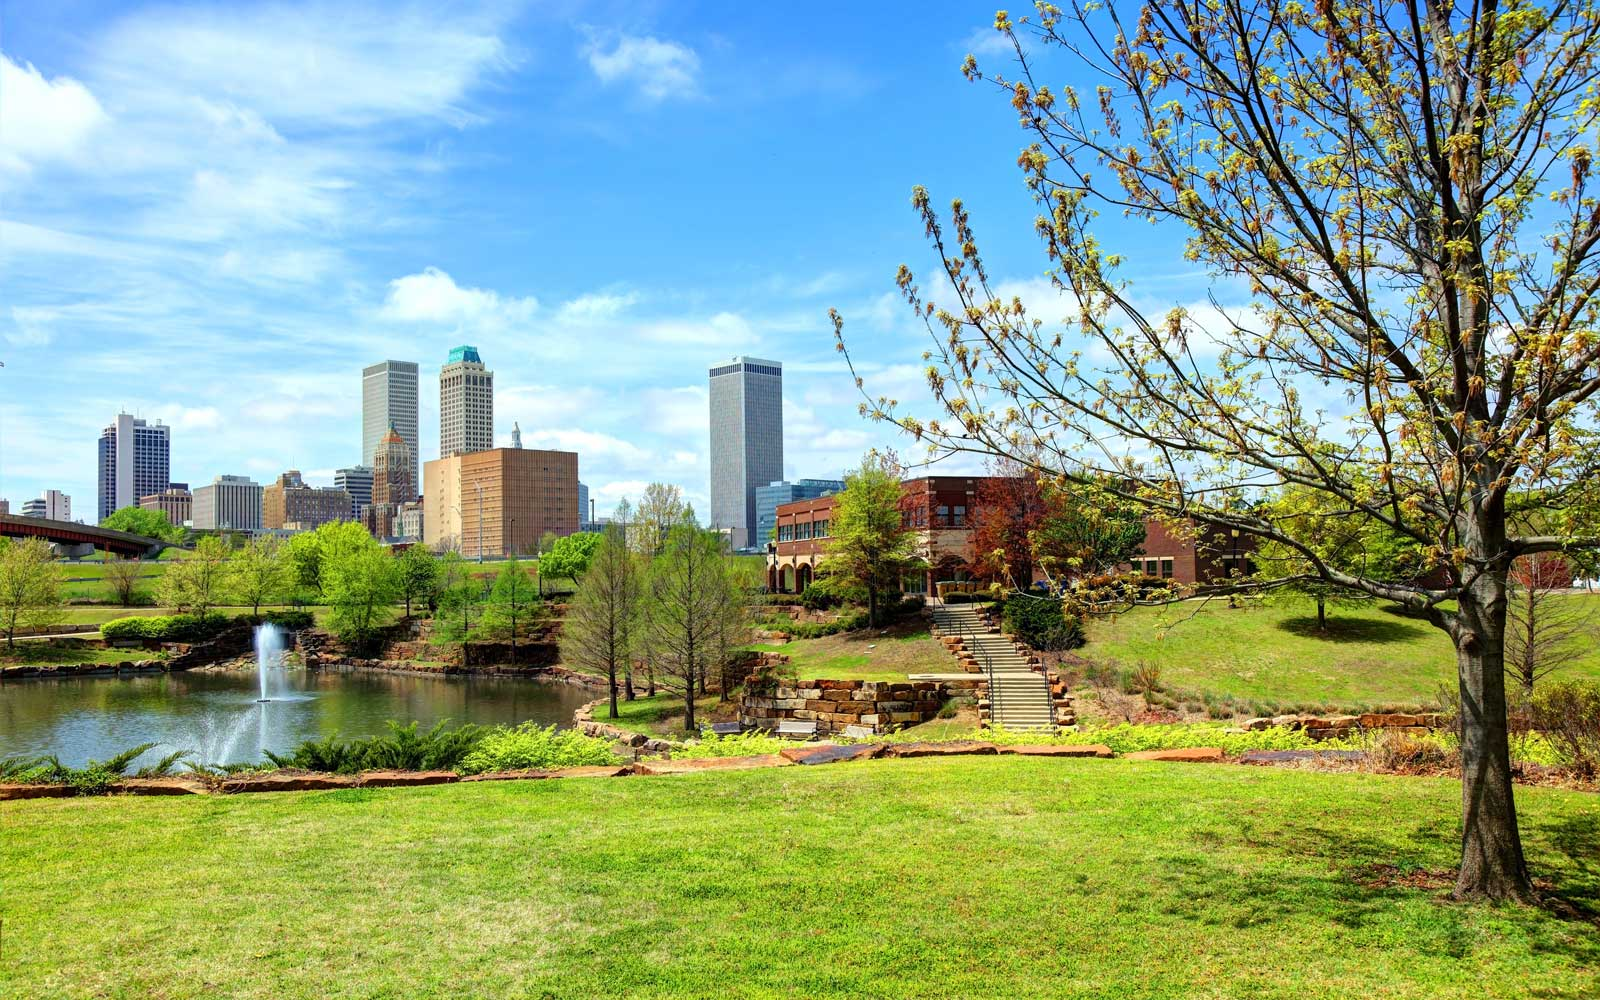 Get paid $10,000 to move to Tulsa, Oklahoma.